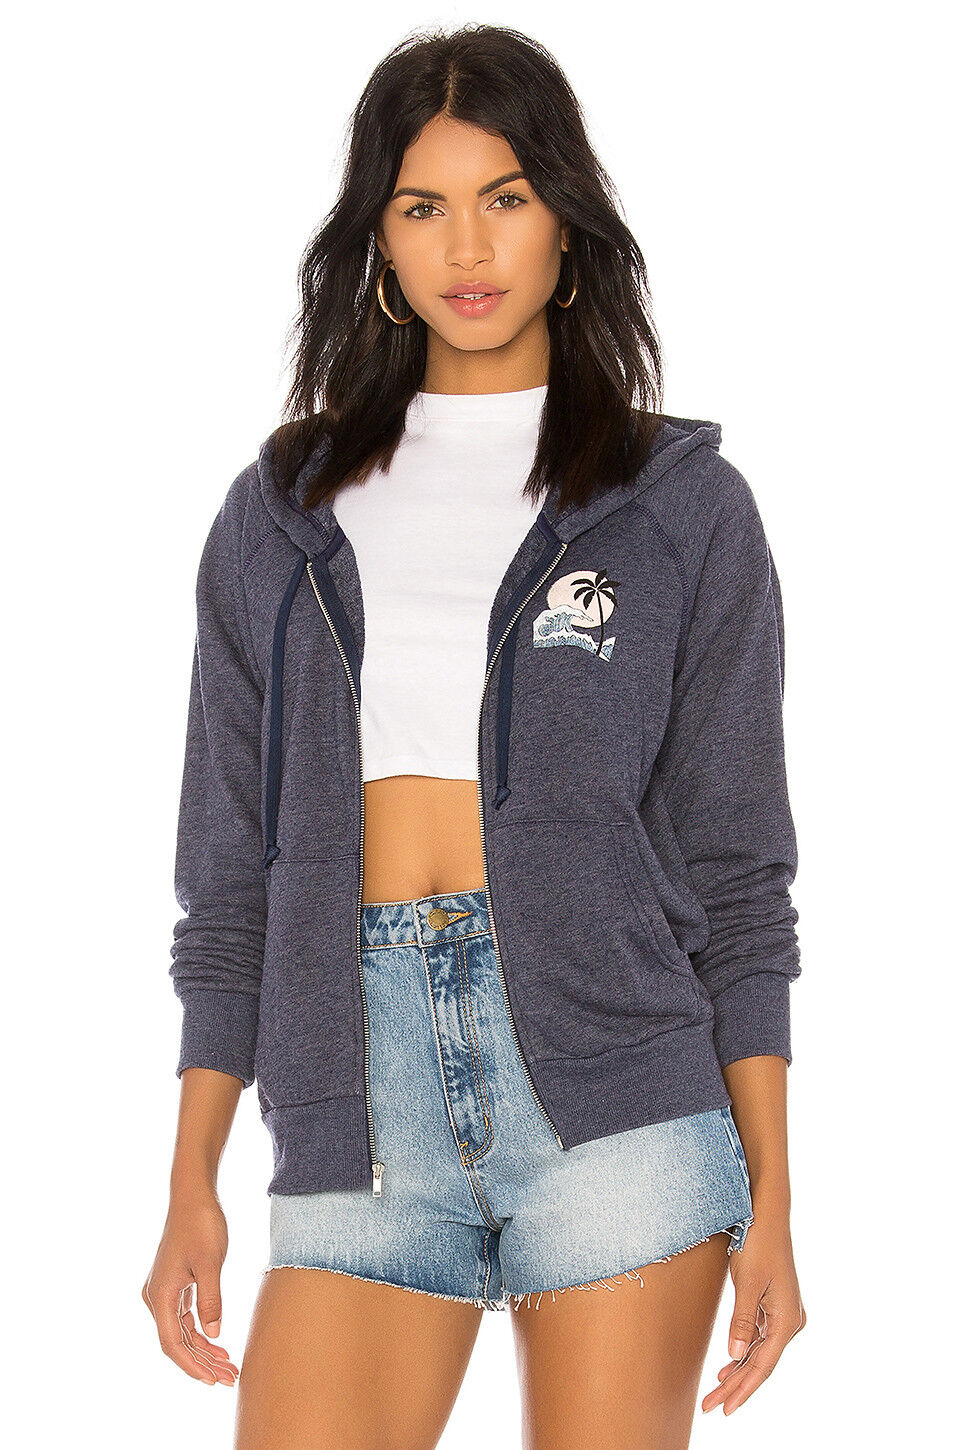 SPIRITUAL GANGSTER women's beach hamsa bonfire zip up hoodie navy new yoga